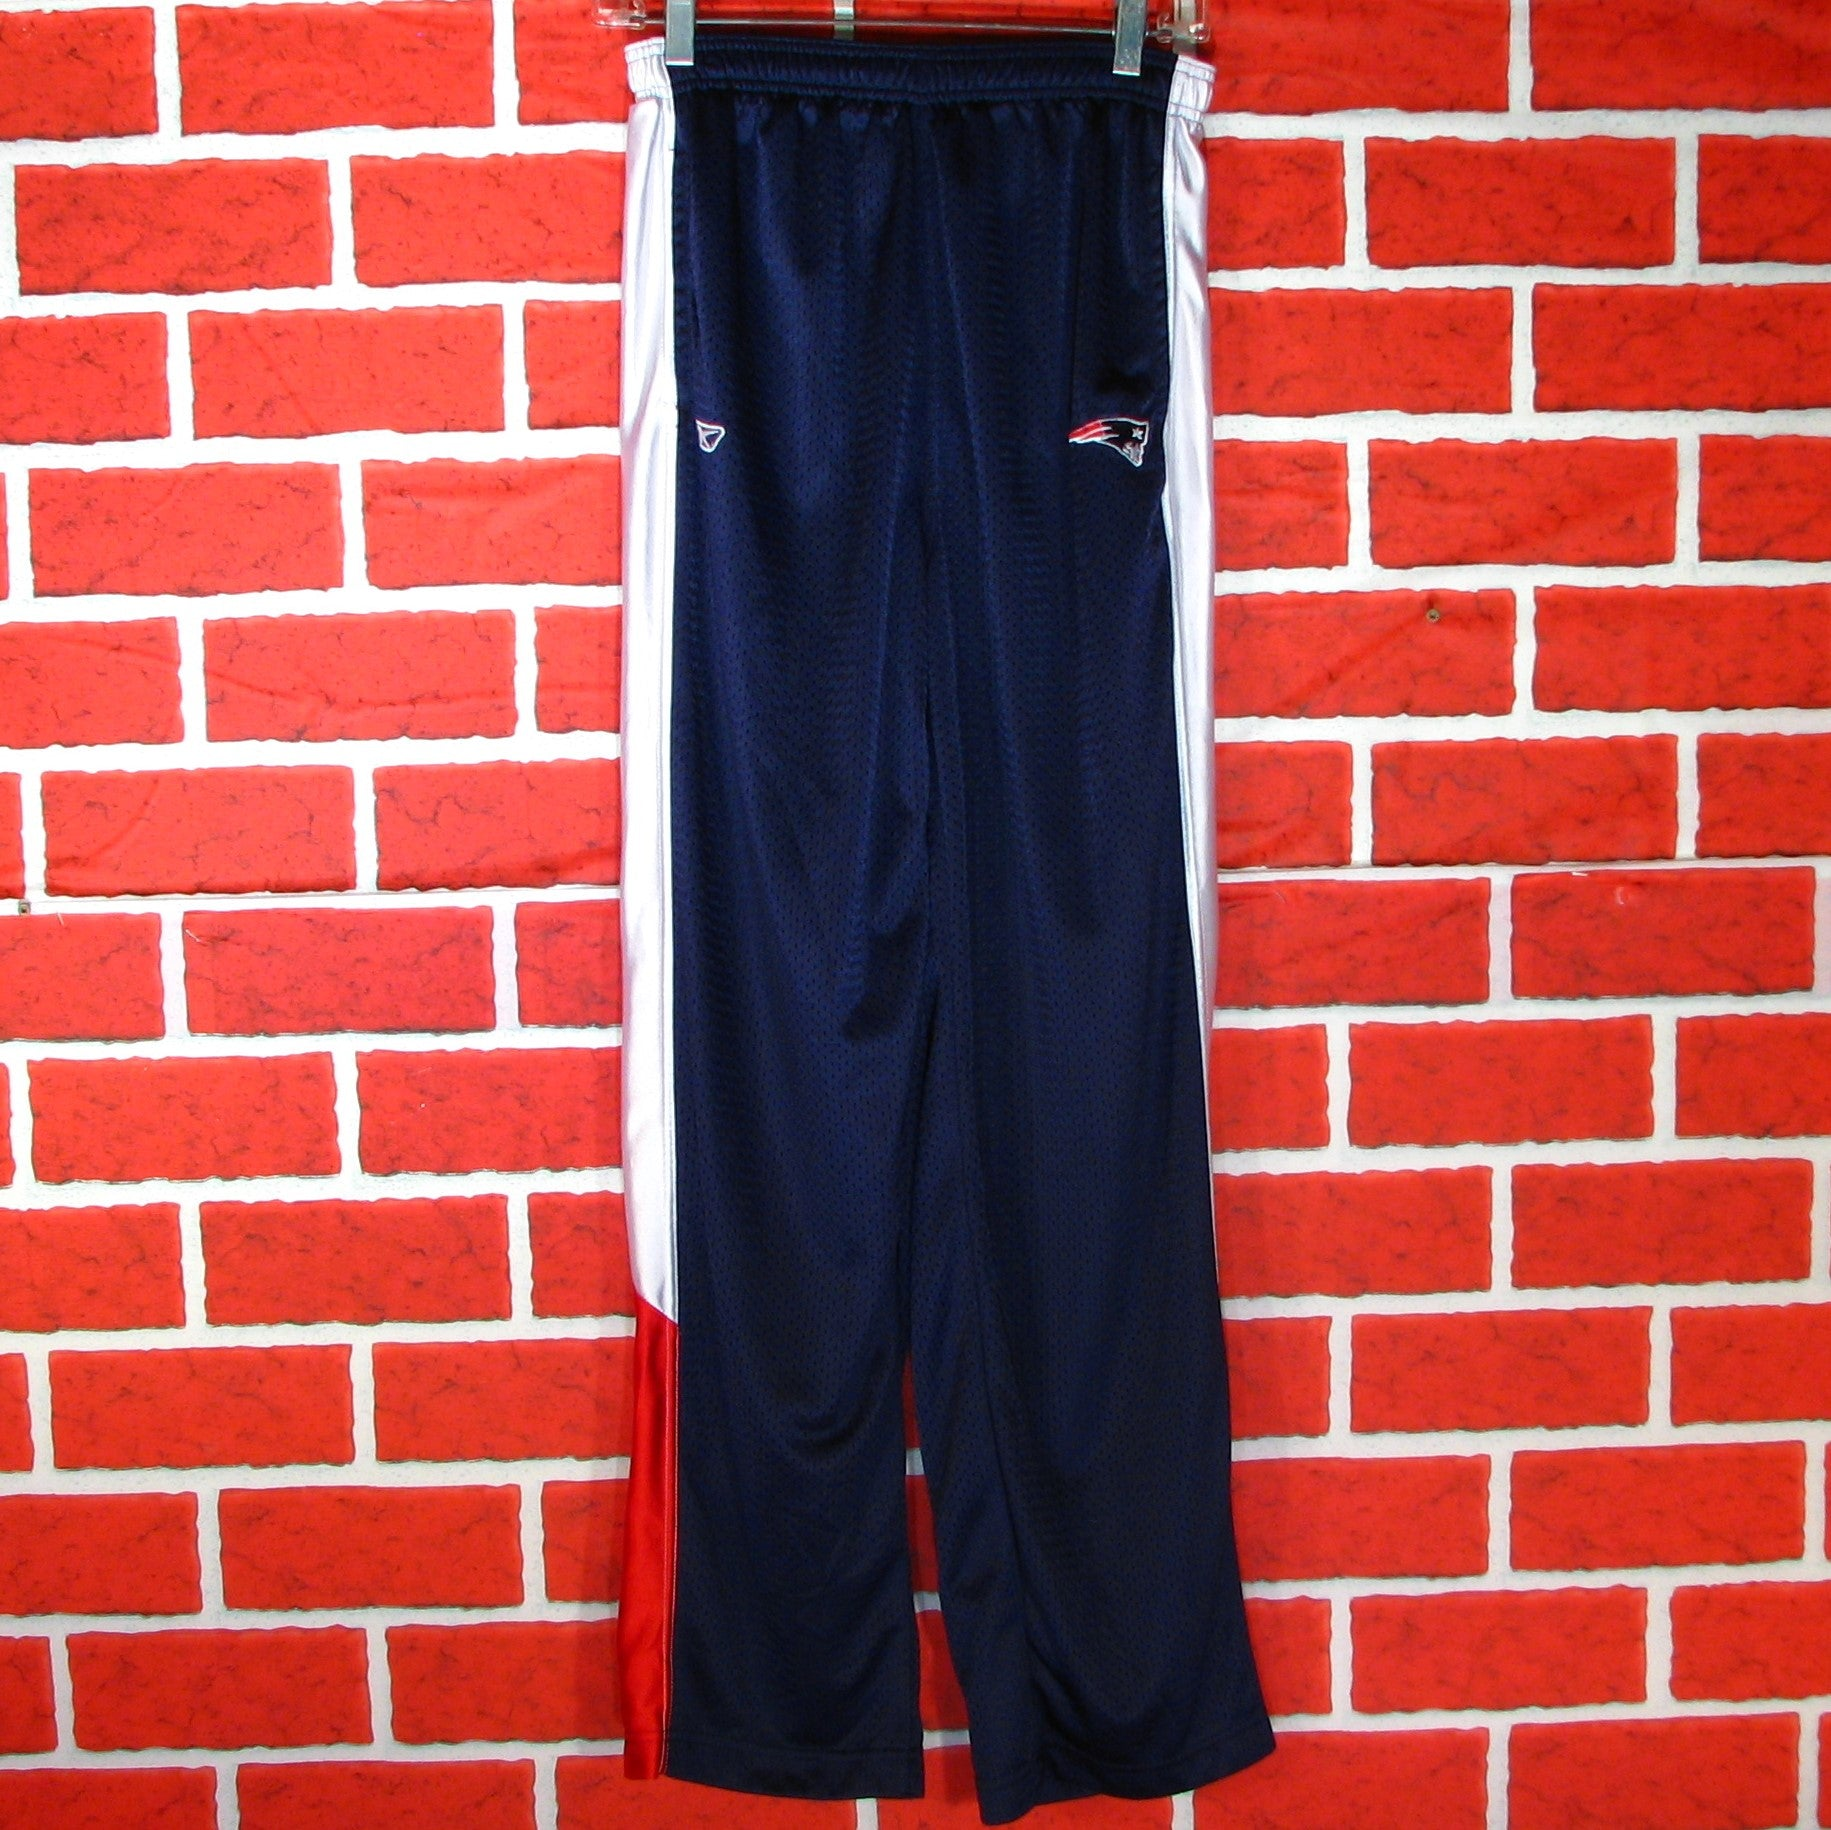 New England Patriots Sweatpants Kids